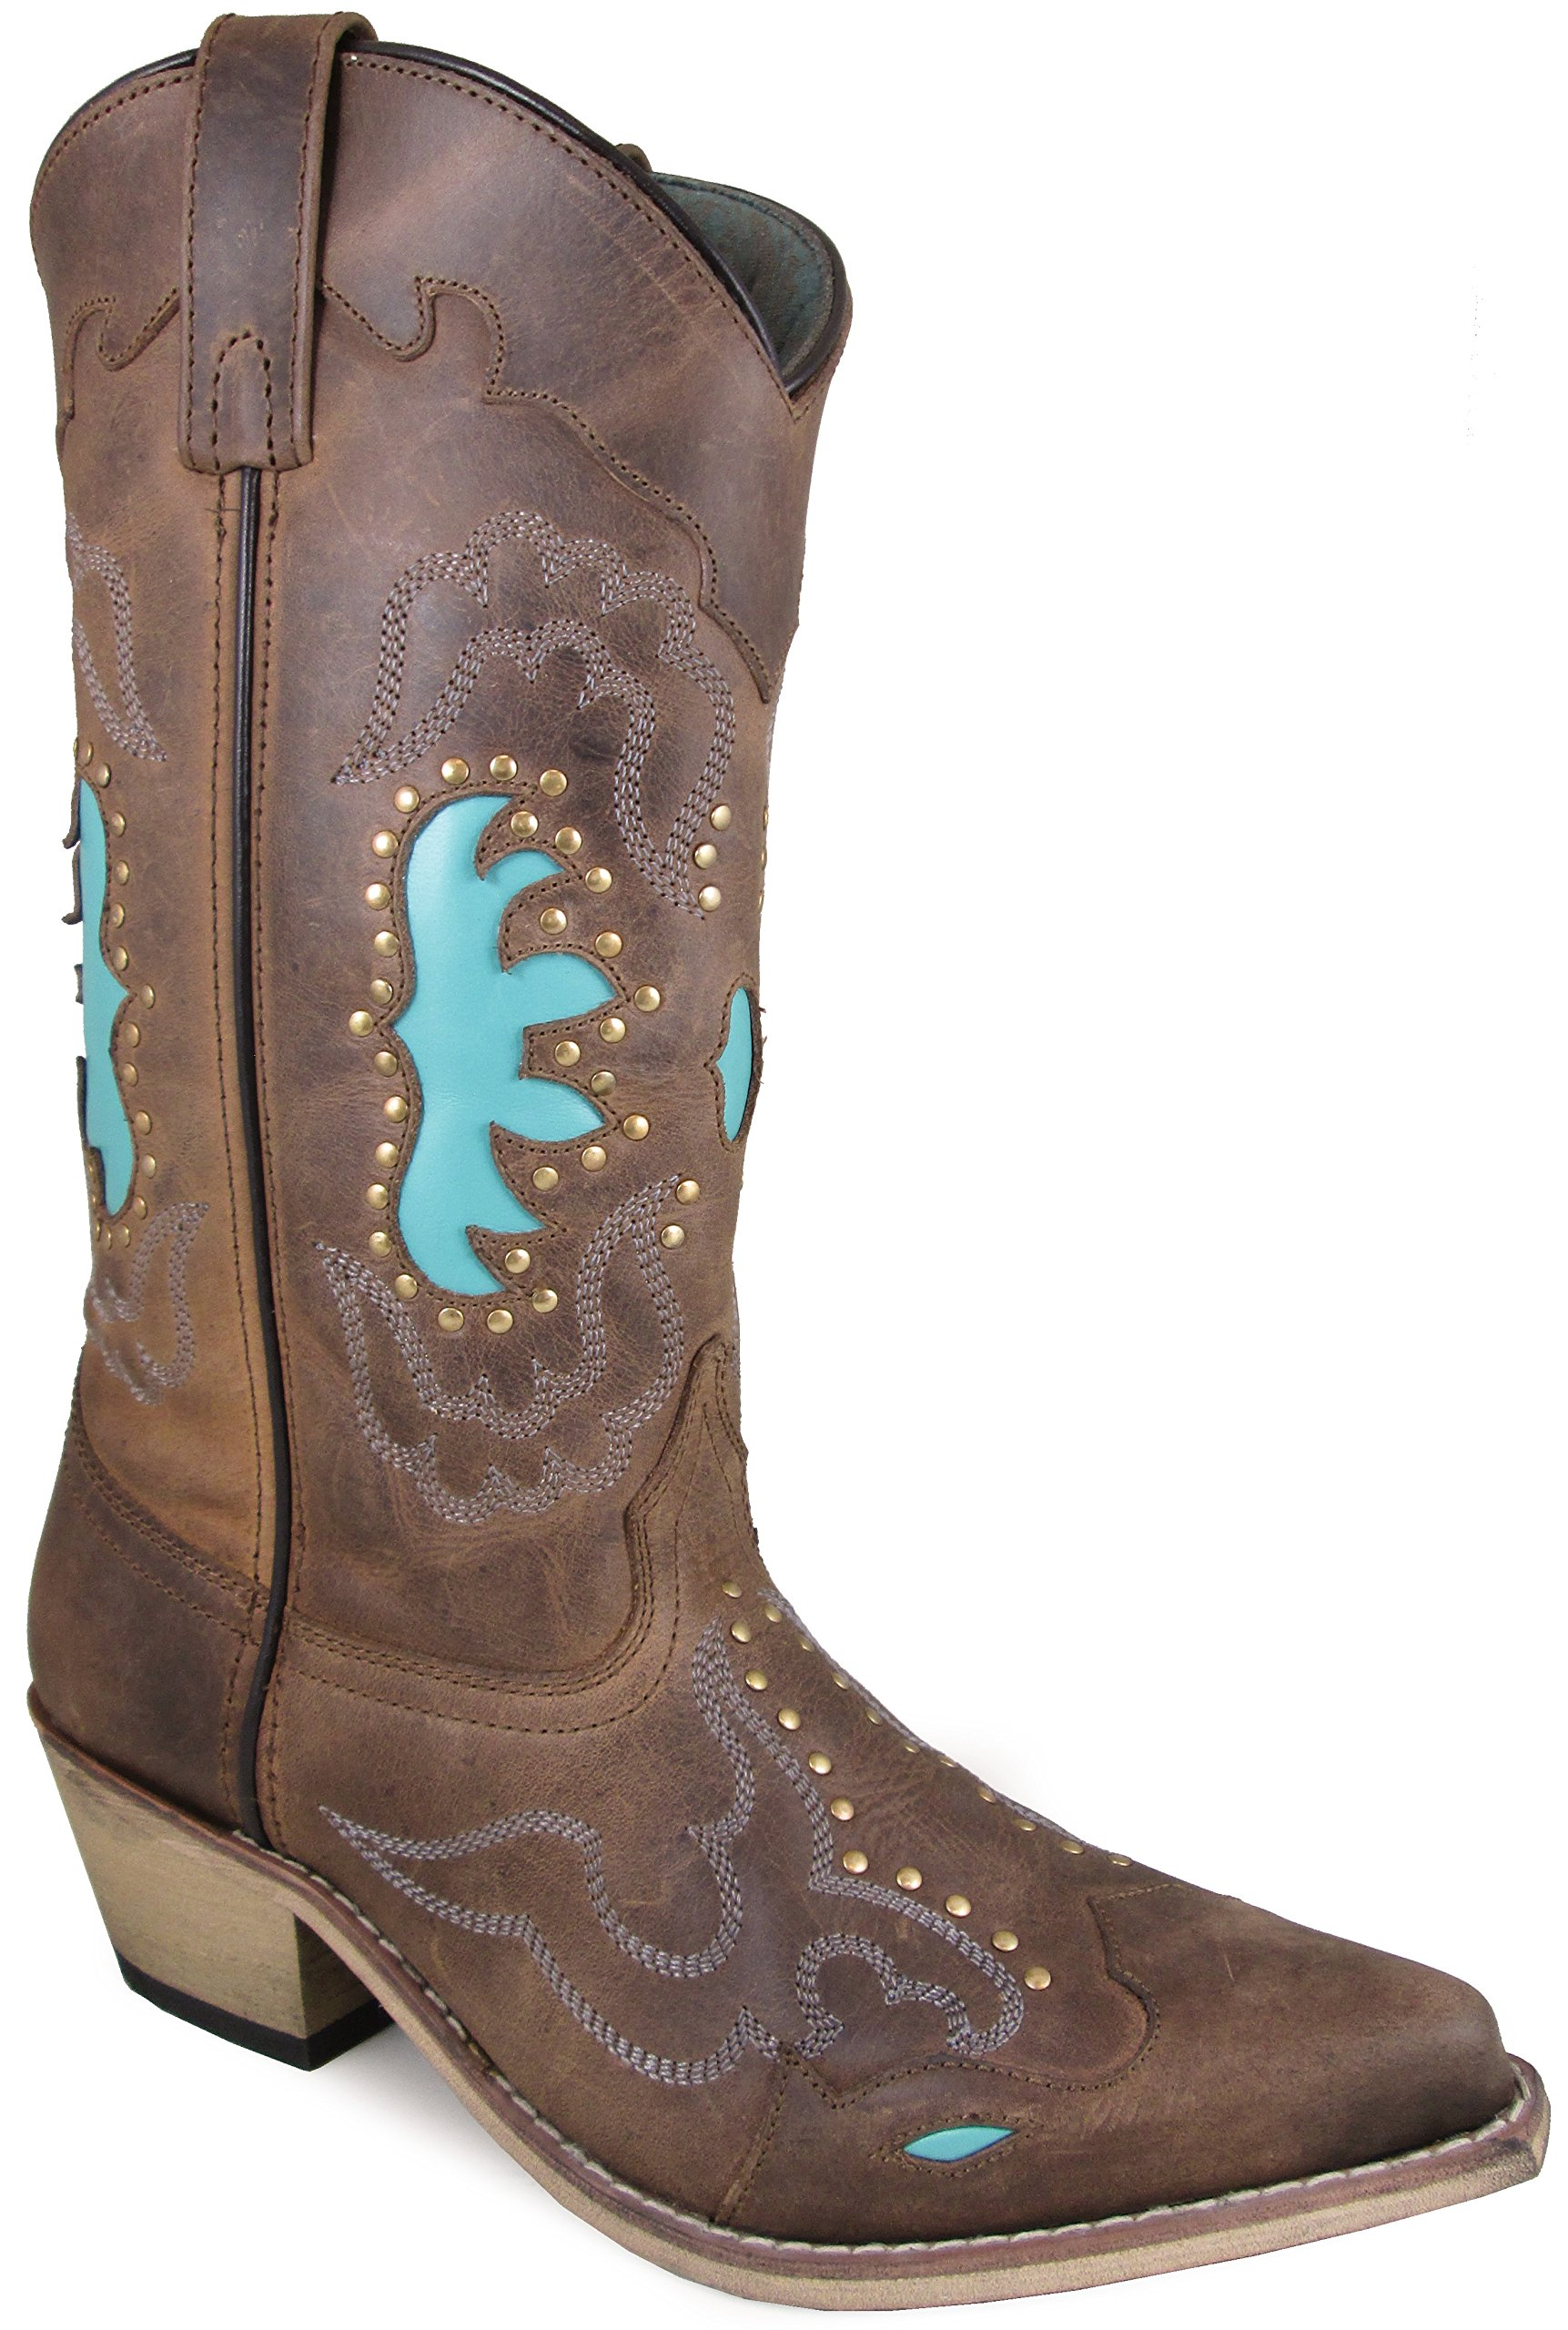 Smoky Mountain Women's Moon Bay Studded Design Snip Toe Brown Distress/Turquoise Boots 7M by Smoky Mountain Boots